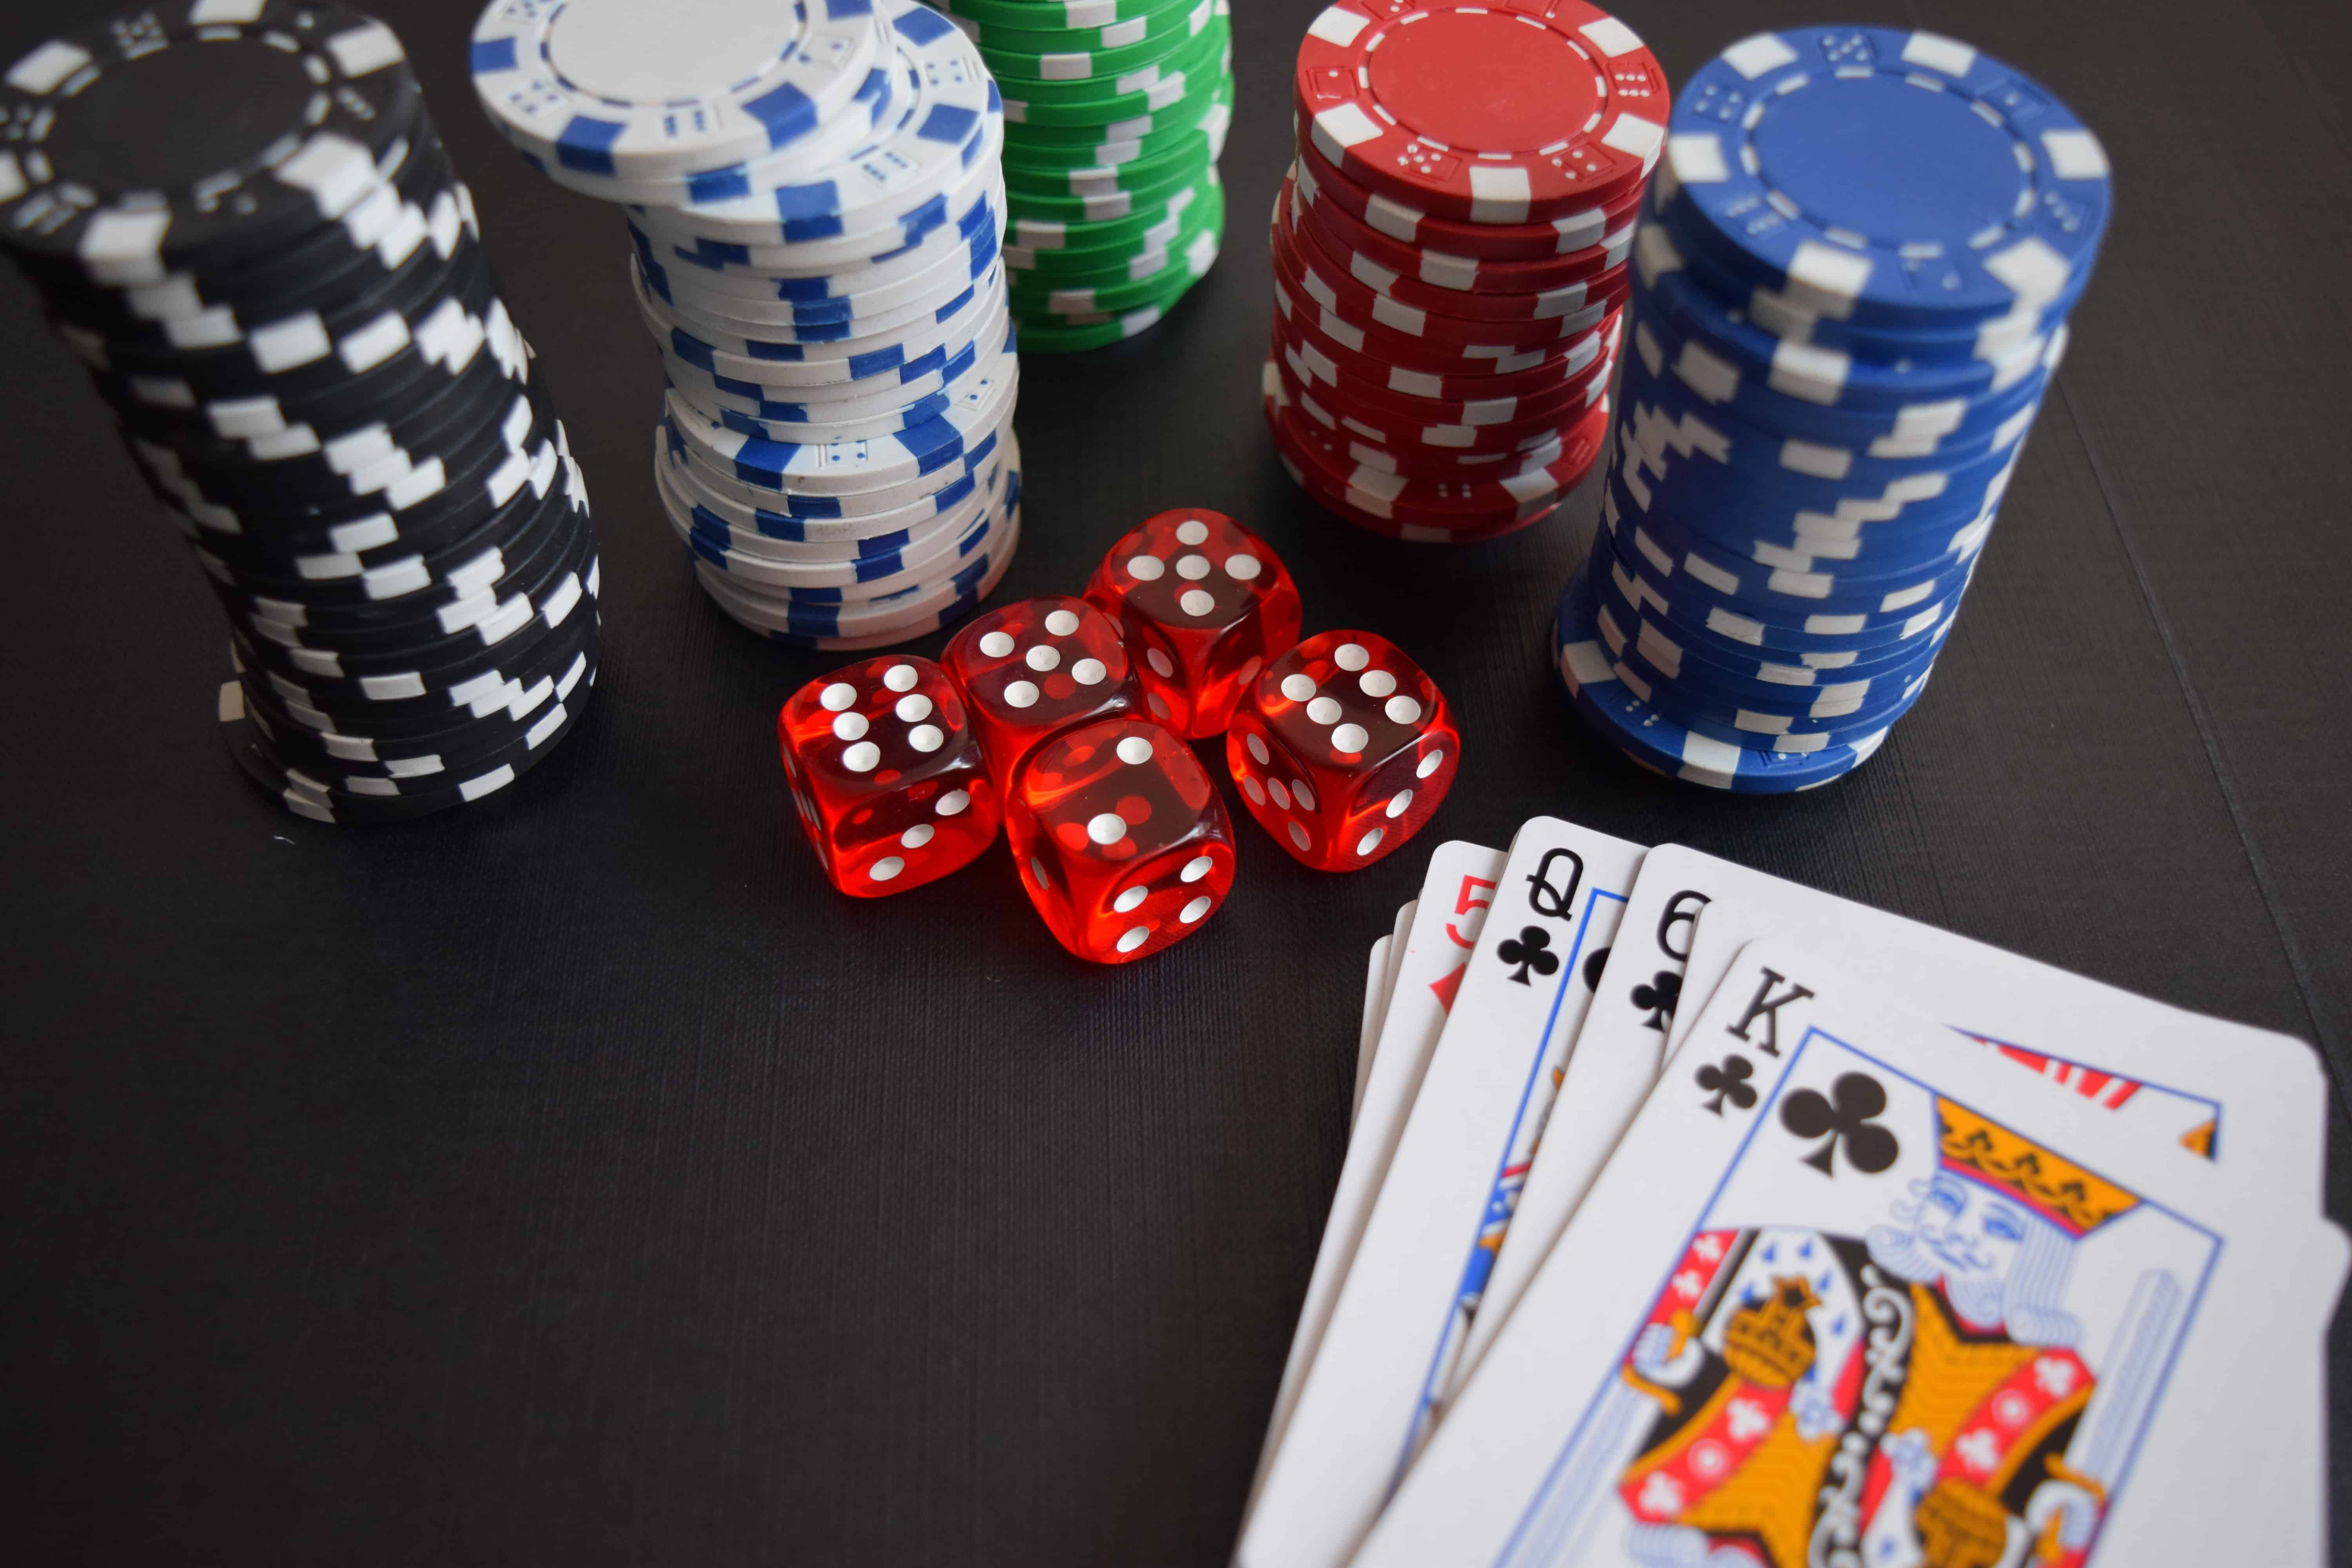 Treatment Center Profile: The Gambling Clinic at the University of Memphis